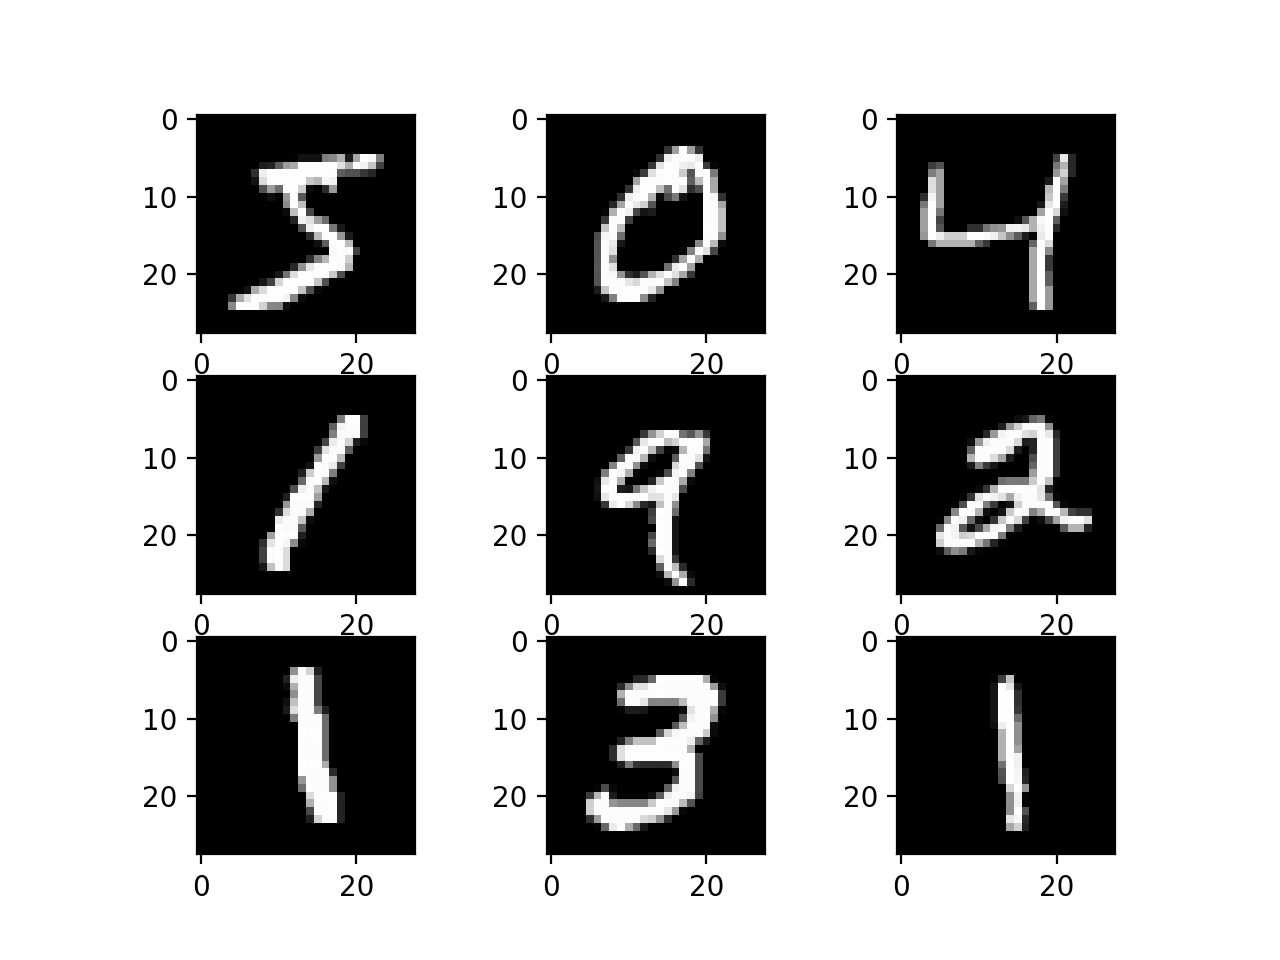 Plot of a Subset of Images From the MNIST Dataset